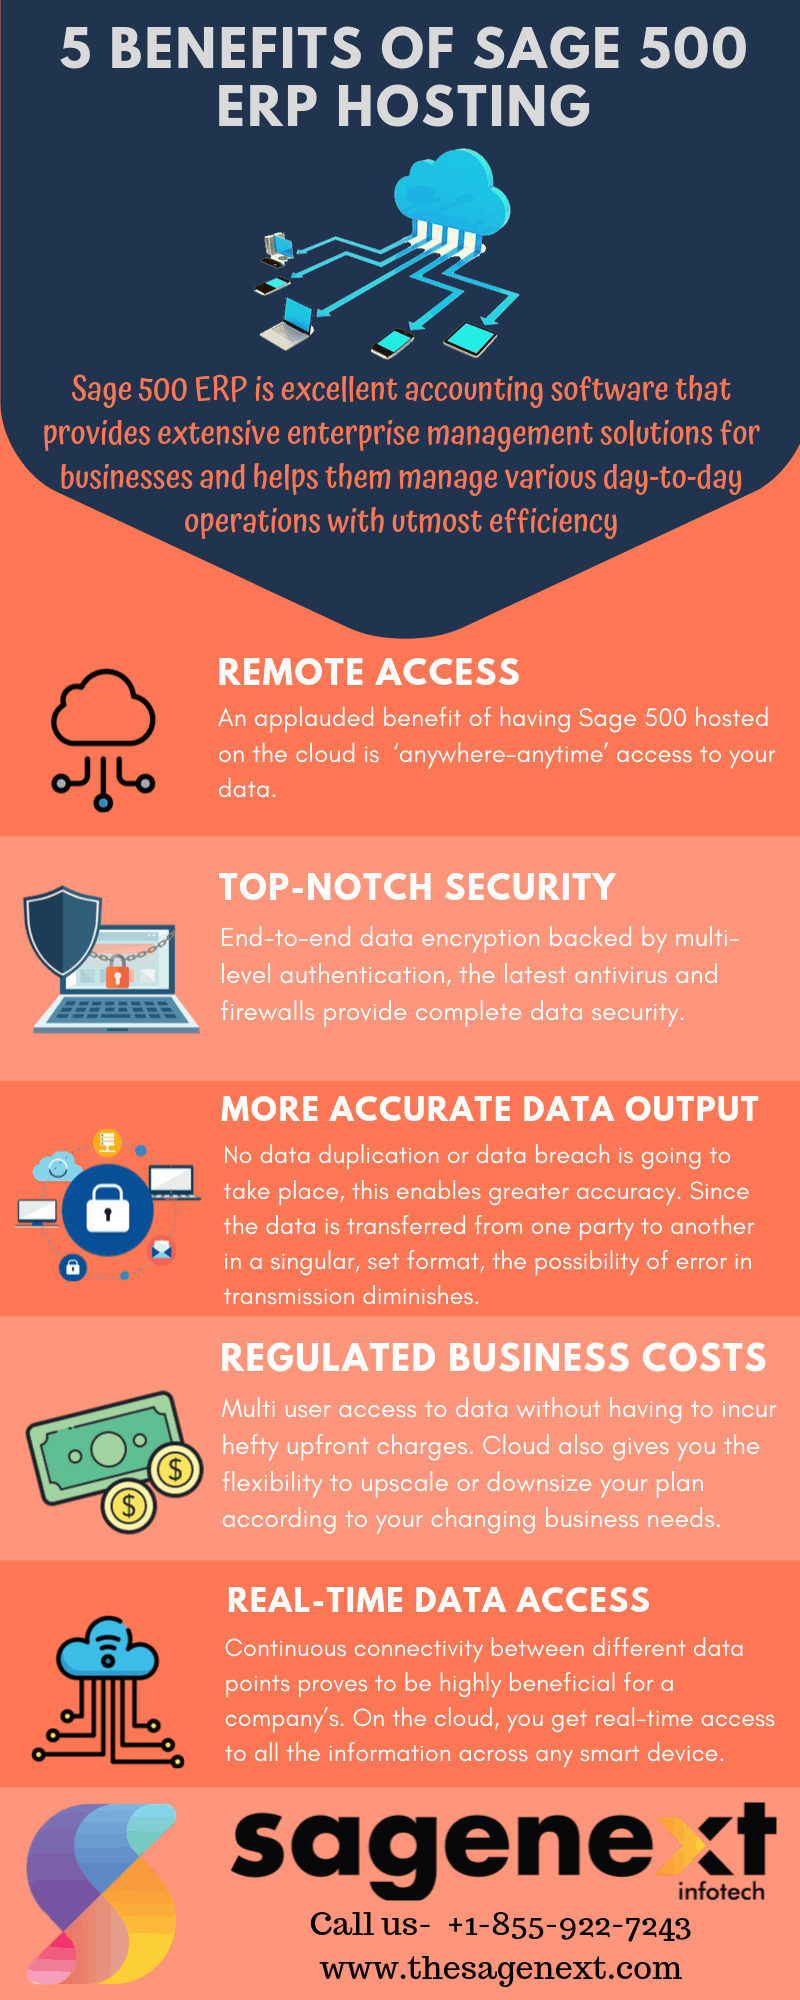 Benefits of Sage 500 ERP hosting